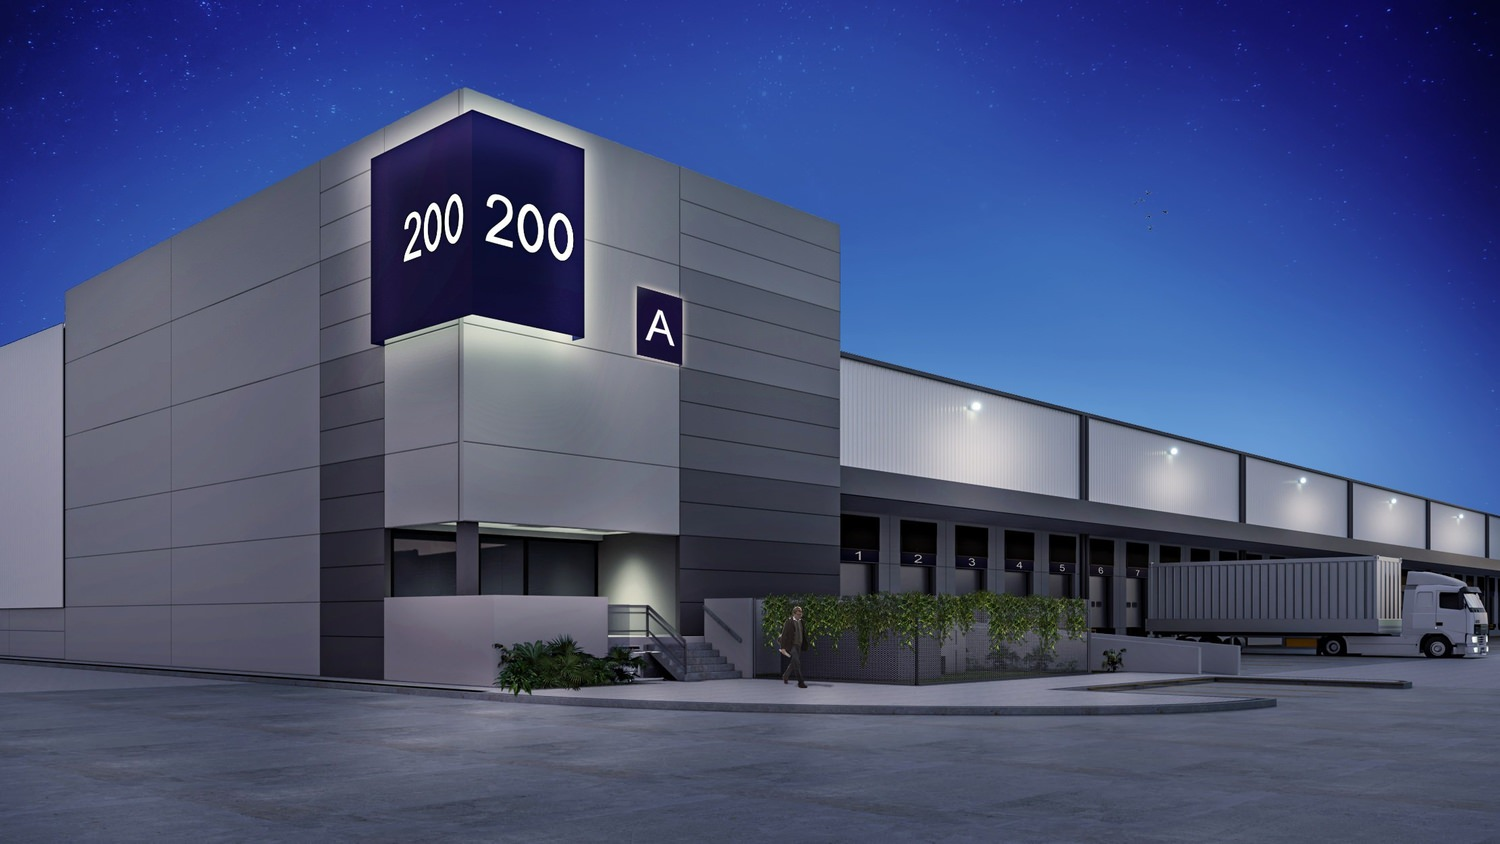 A large building that is labeled as 200 A with semi trucks that are backed into the loading bays of it.